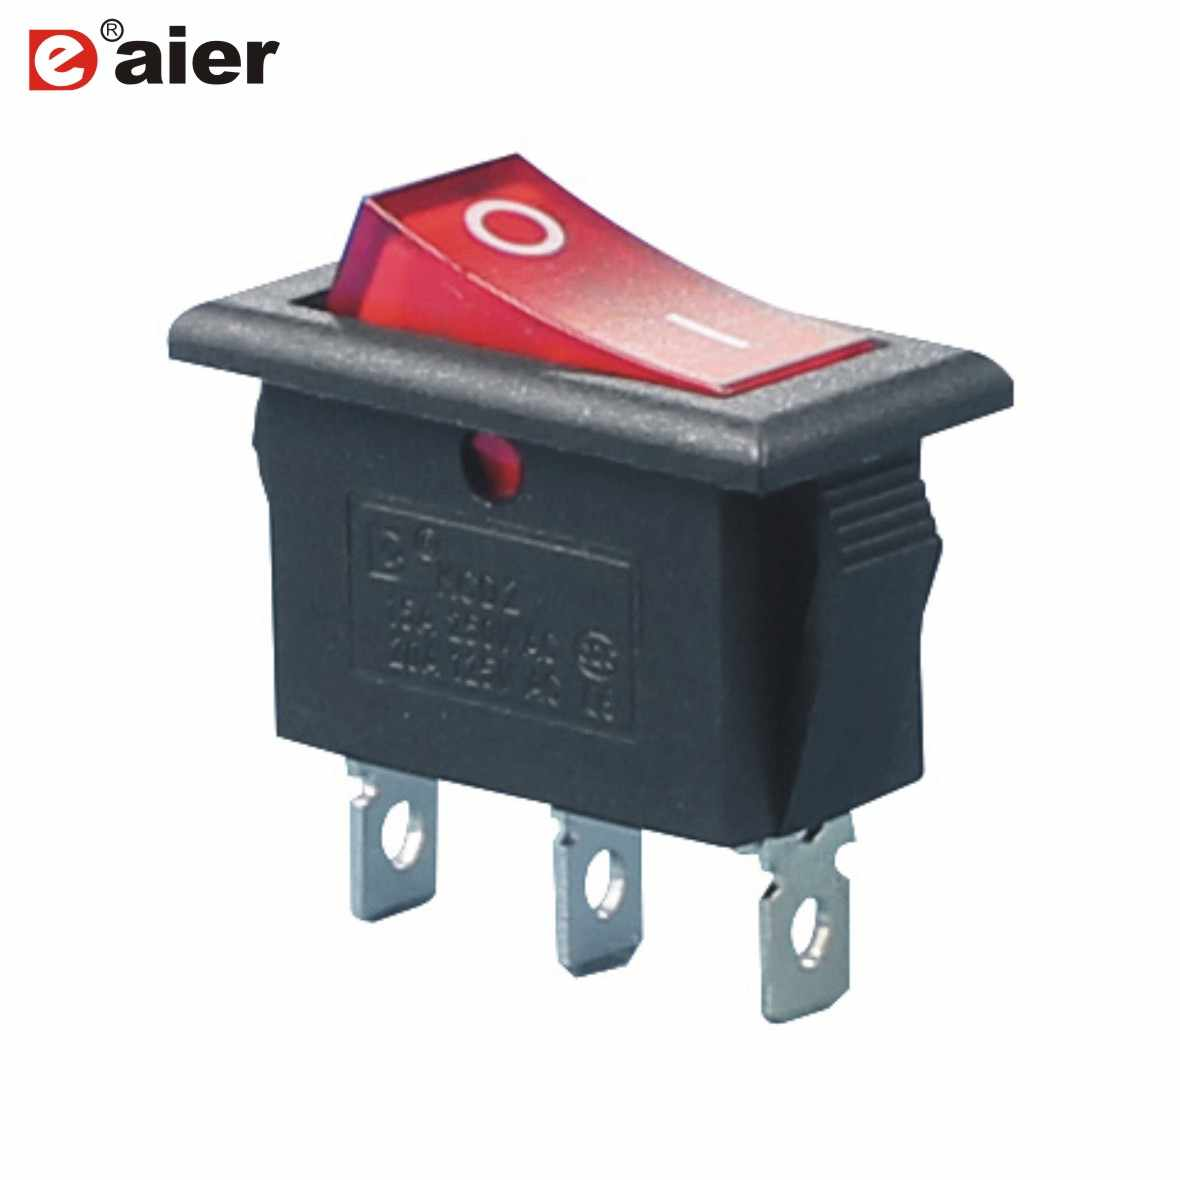 5 Pcs KCD3-3-101N Diterangi 220V On/Off Rocker Switch Tiang Tunggal Lempar 2 Posisi 20A 125VAC dengan Lampu LED